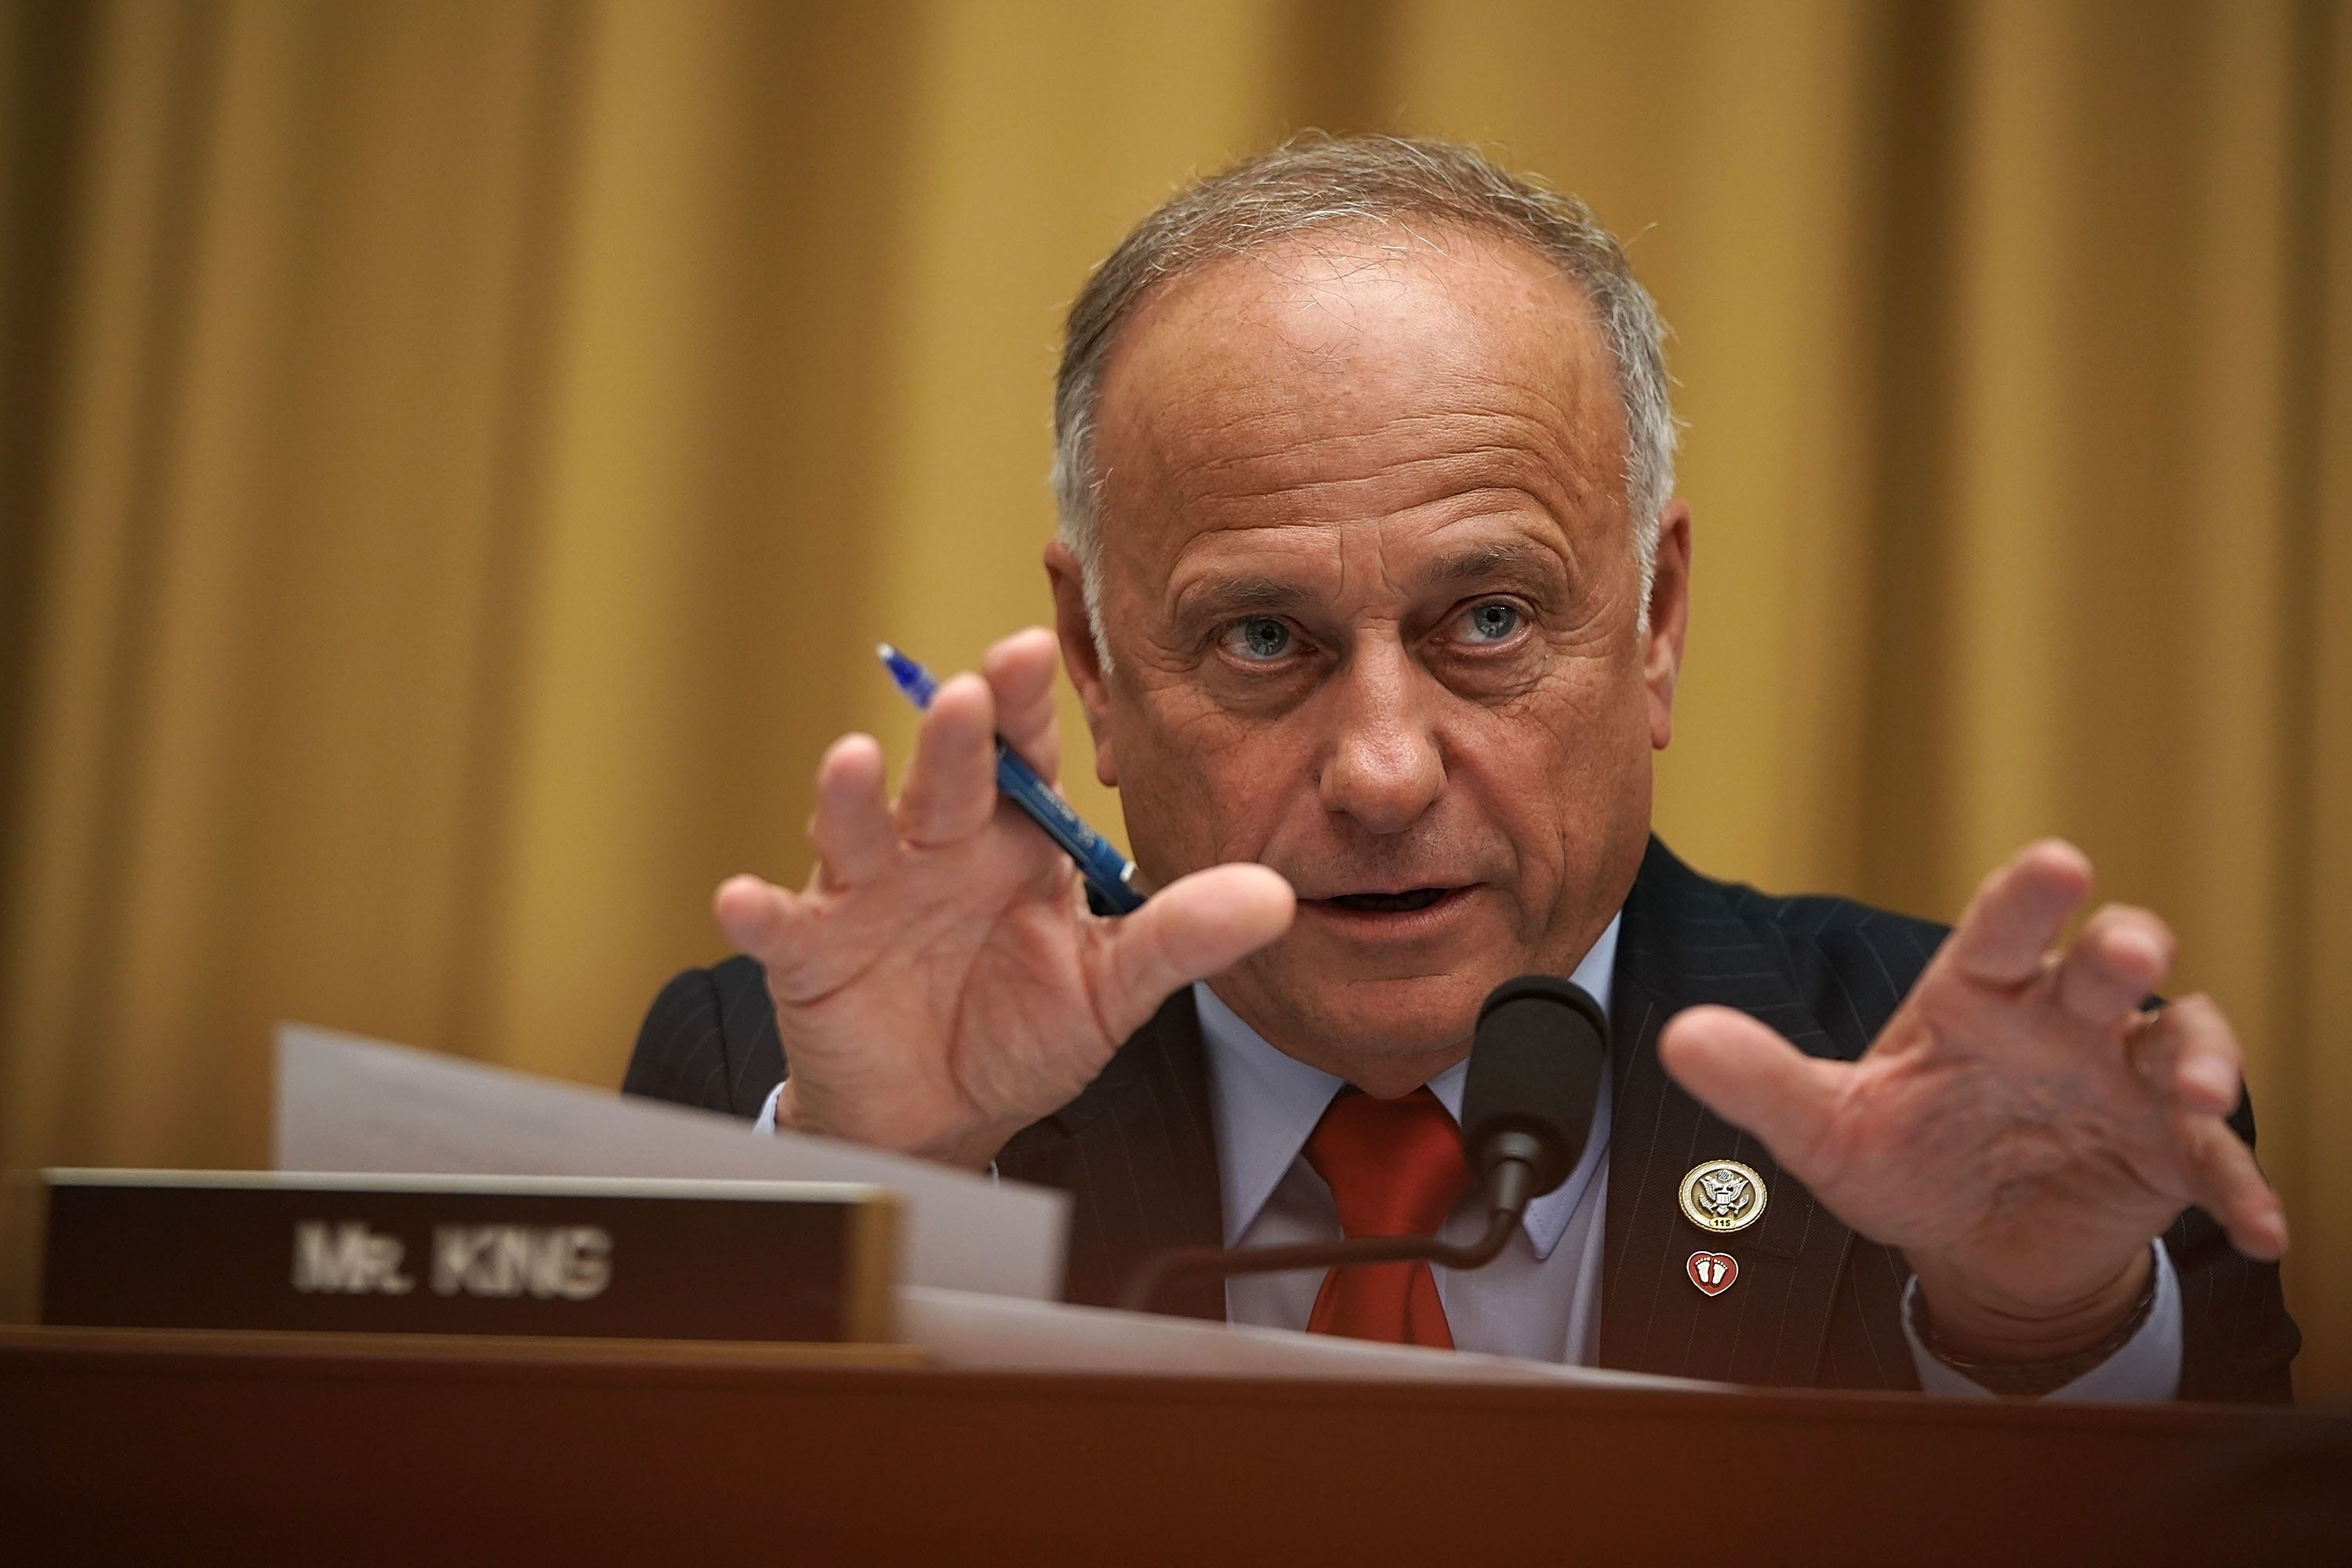 WASHINGTON, DC - JUNE 28:  U.S. Rep. Steve King (R-IA) speaks during a hearing before the House Judiciary Committee June 28, 2018 on Capitol Hill in Washington, DC. The committee held a hearing on 'Oversight of FBI and DOJ Actions Surrounding the 2016 Election.'  (Photo by Alex Wong/Getty Images)